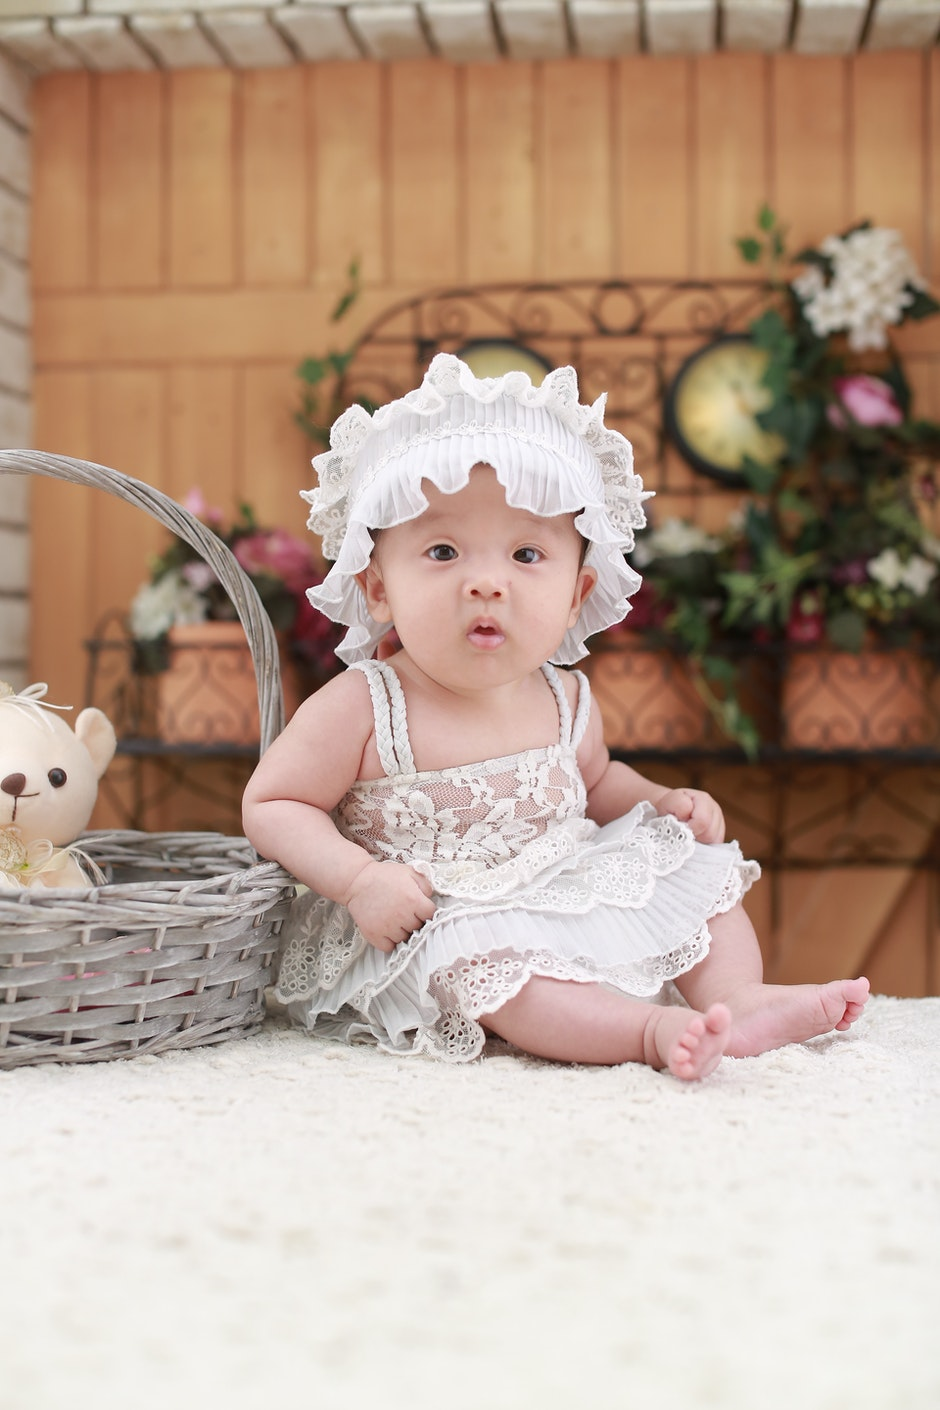 Baby Wearing White Headband and White Lace Floral Dress Sitting Beside Gray Wicker Basket